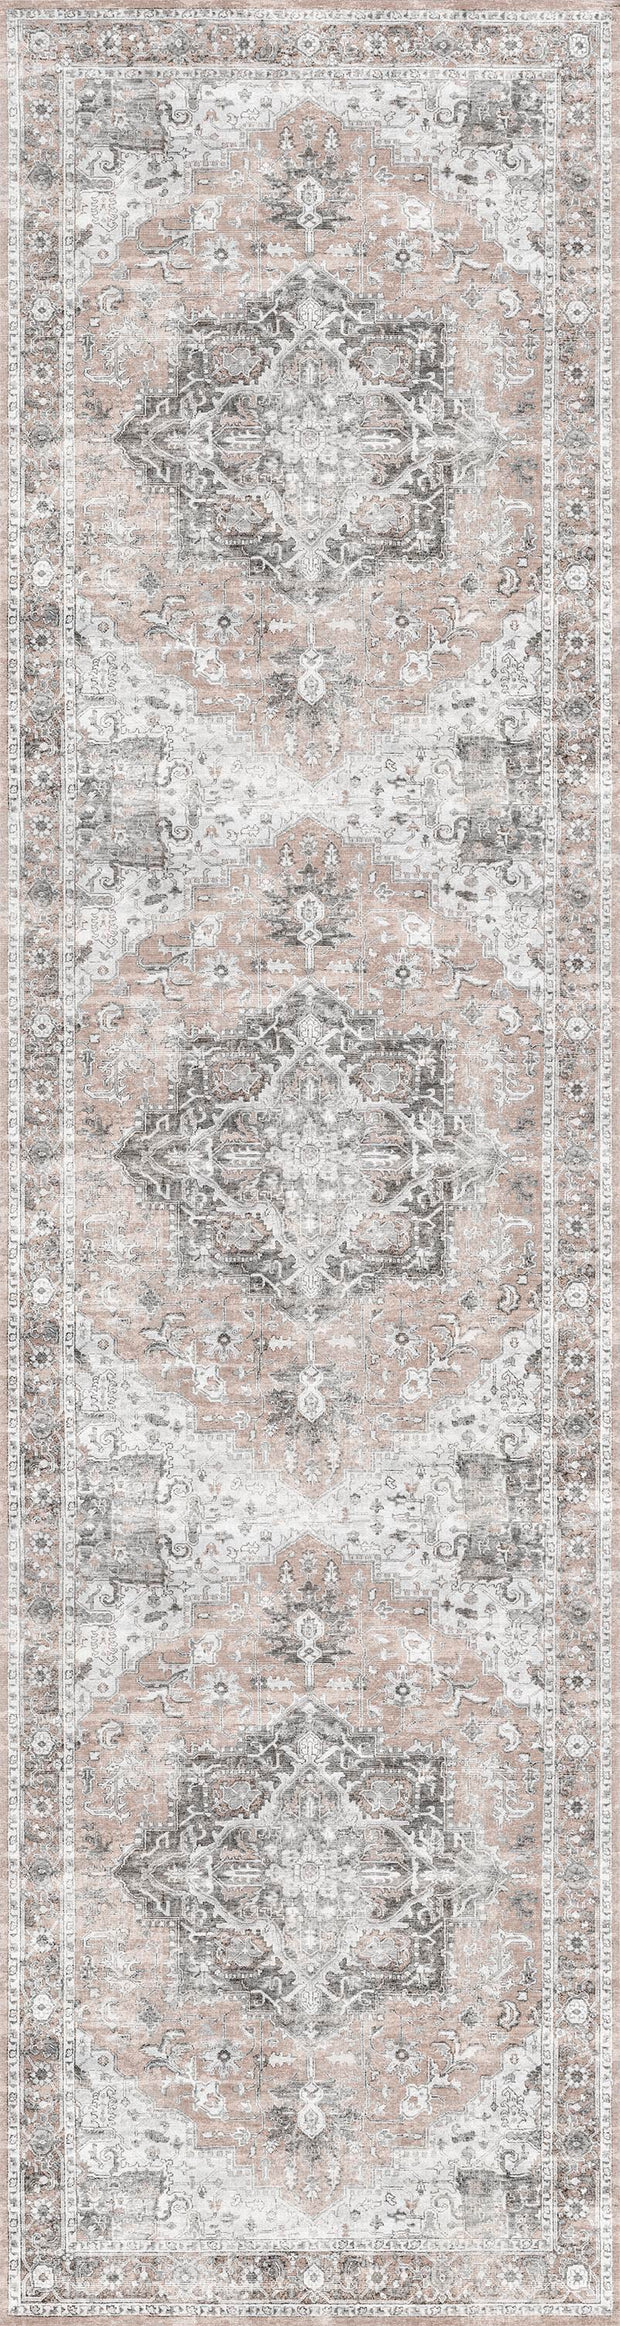 Distressed Vintage Cezanne Blush Area Rug